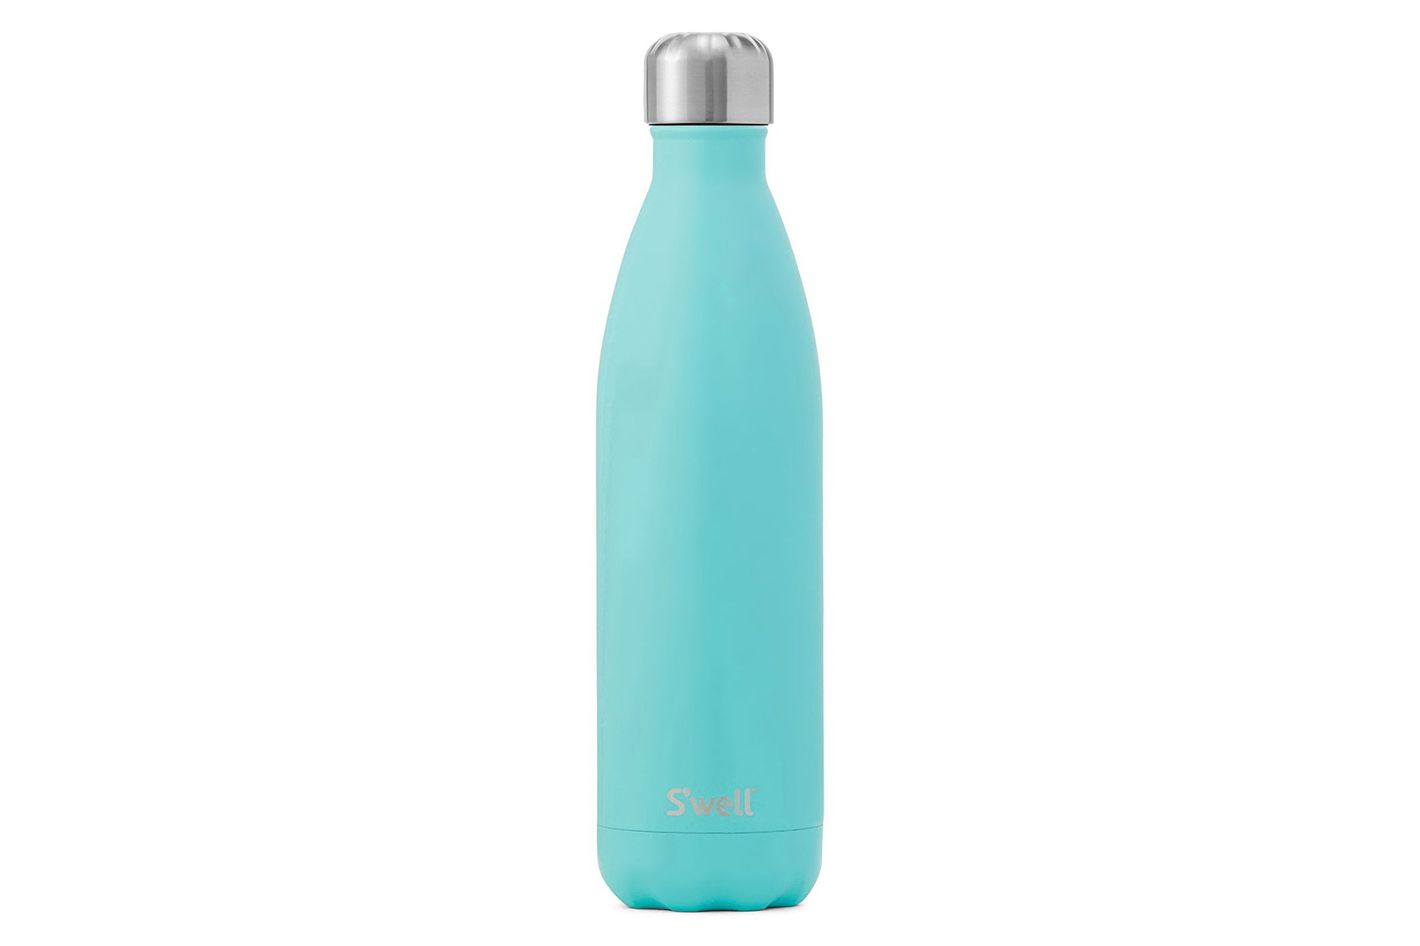 S'well Paua Insulated Stainless Steel Water Bottle